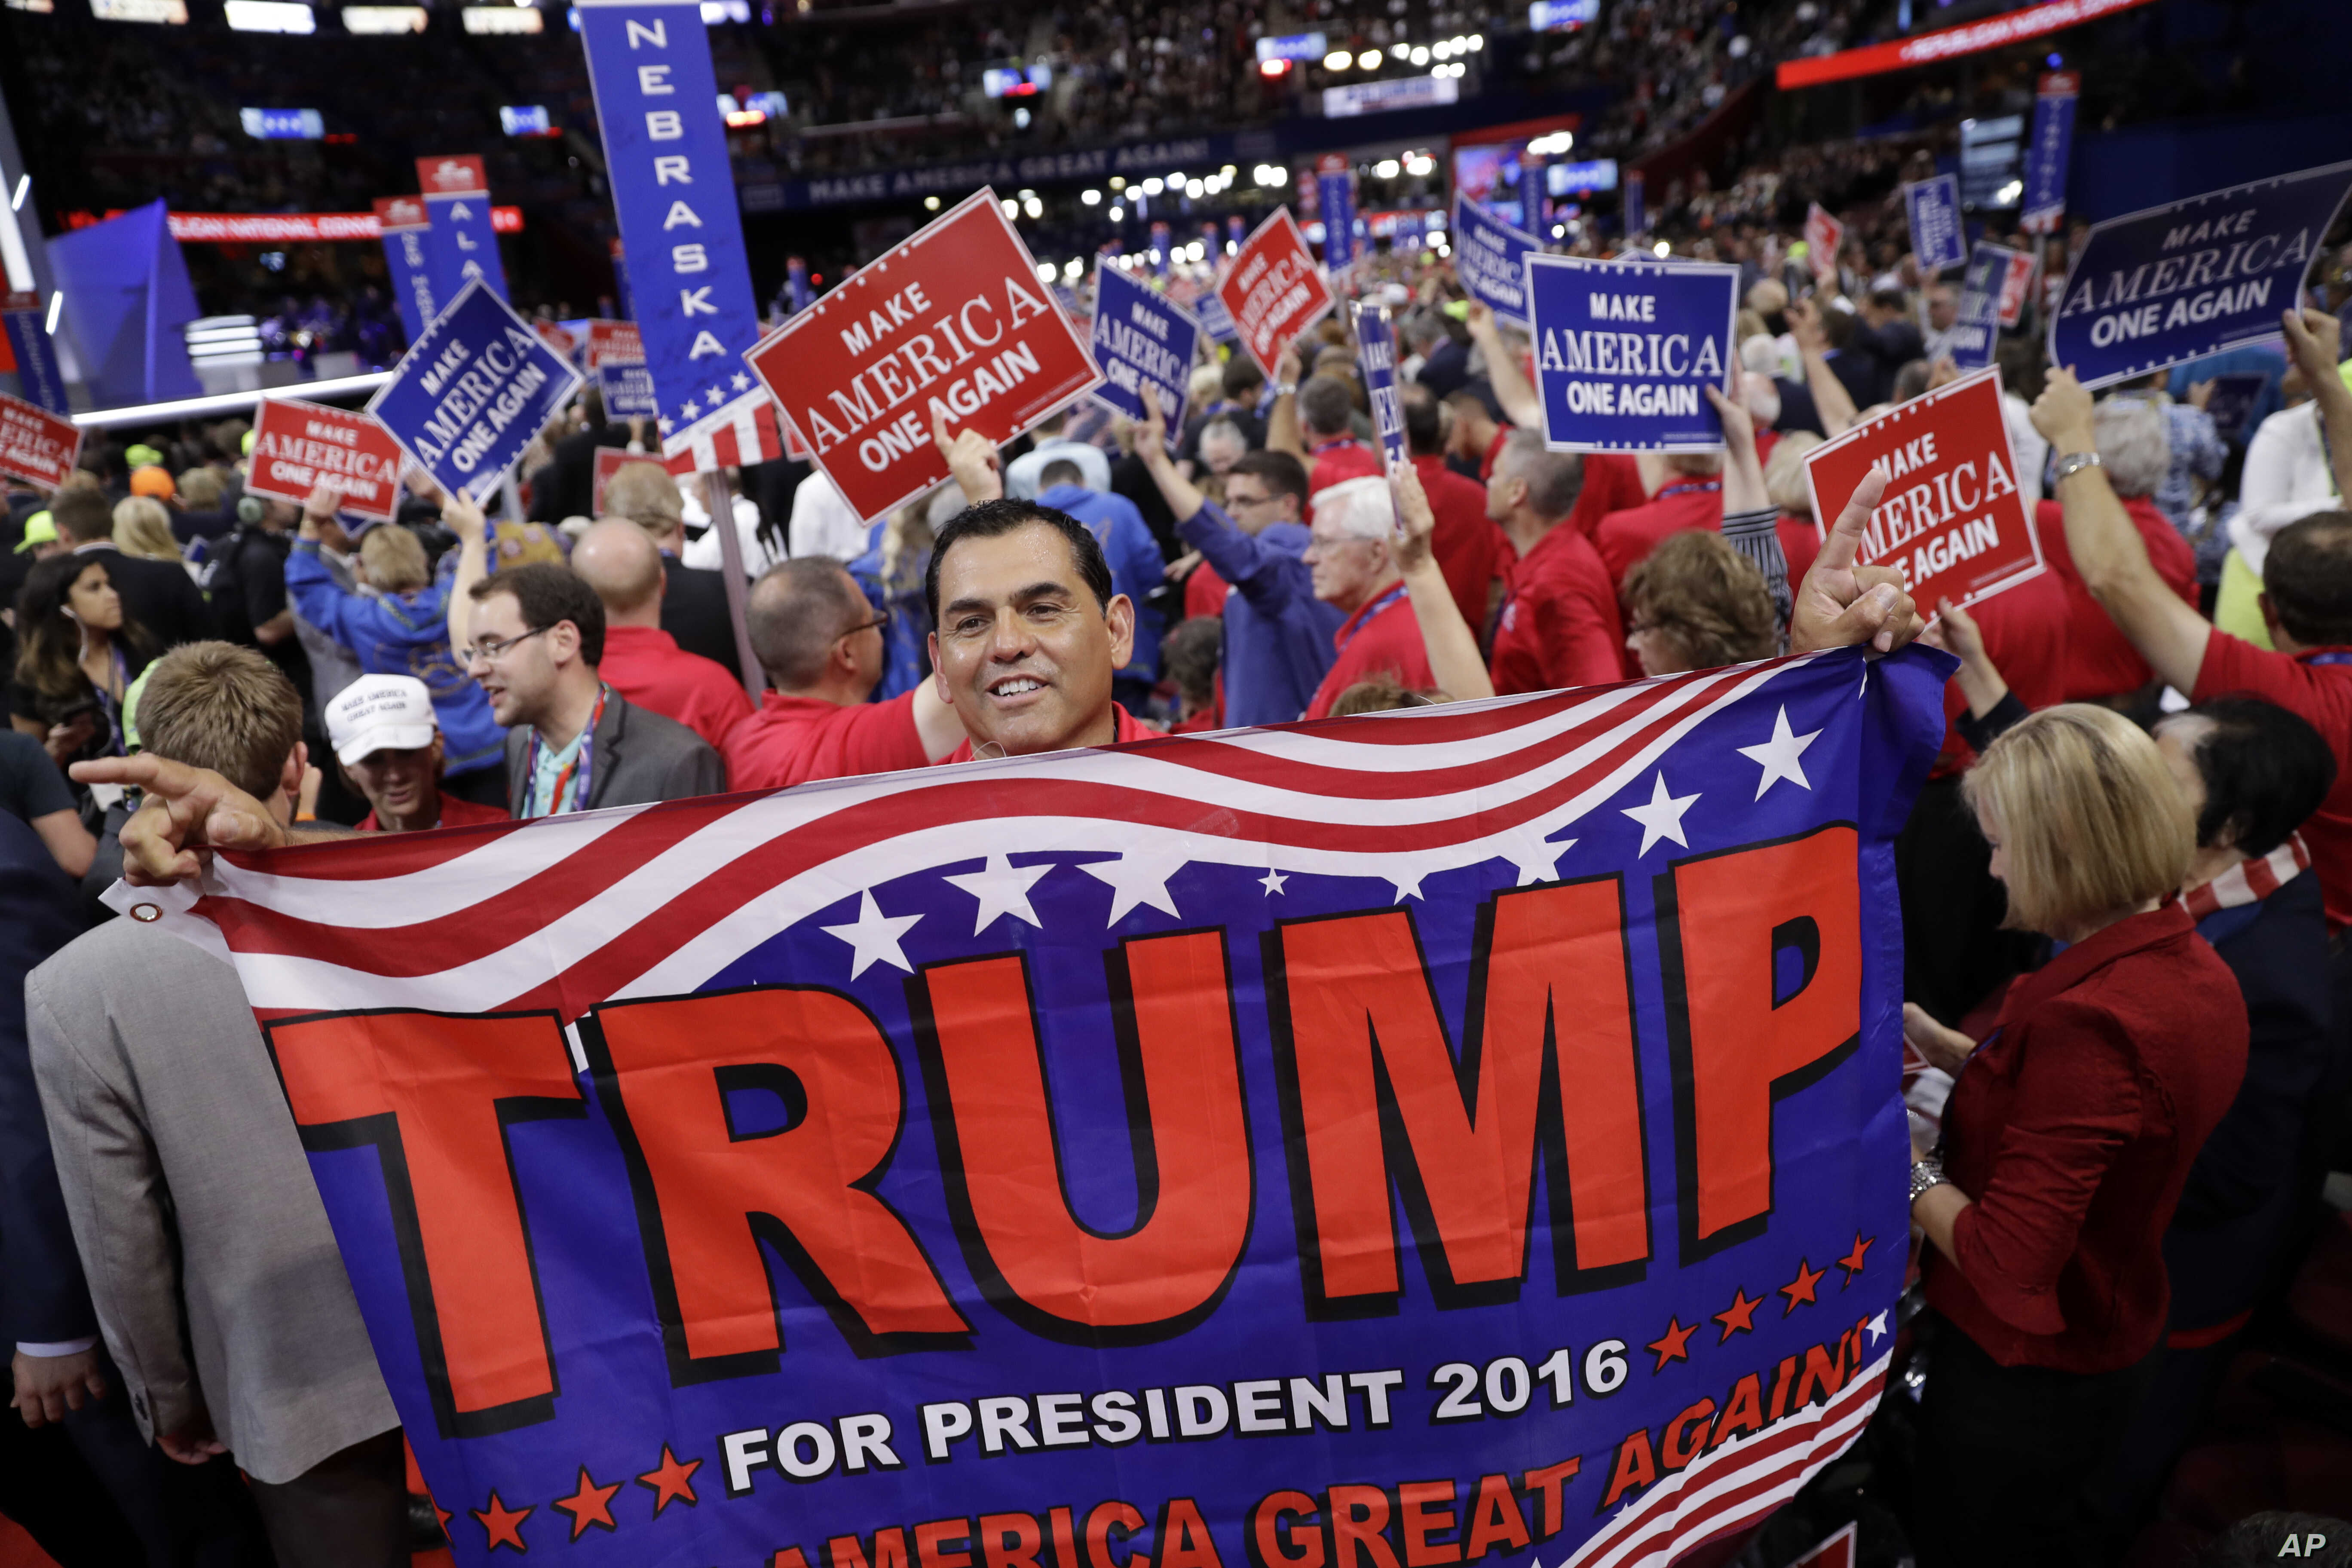 Alaska delegate Saul Soltero waves a Trump flag during the final day of the Republican National Convention in Cleveland, July 21, 2016.